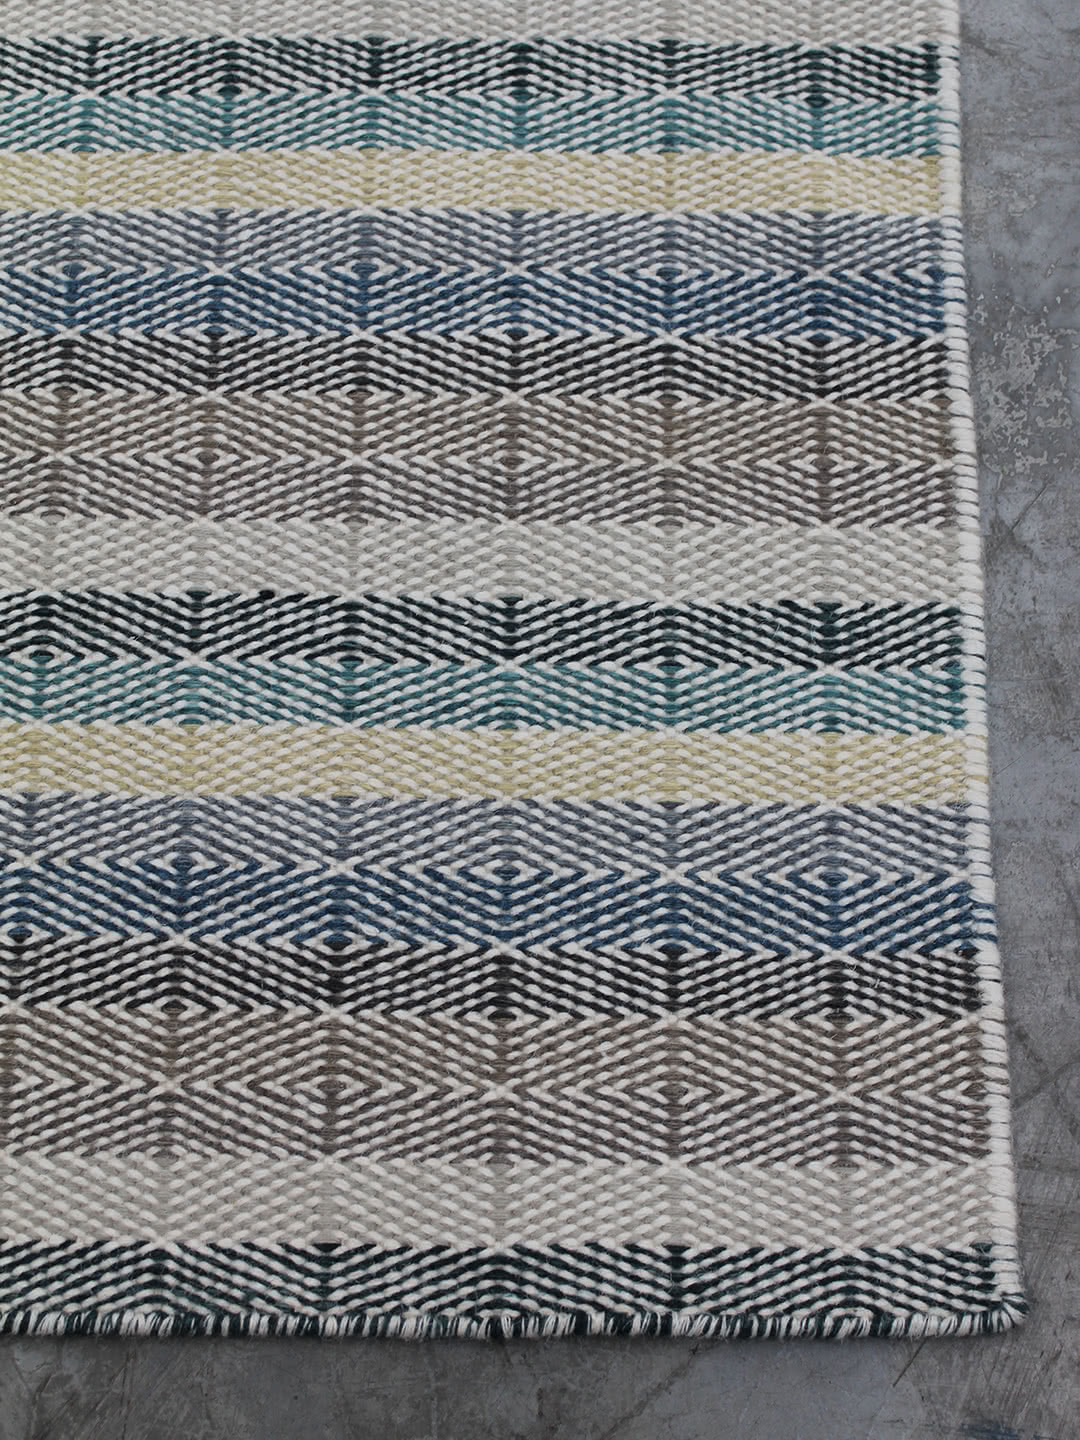 Teal-Sand-Corner pure wool rugs Perth